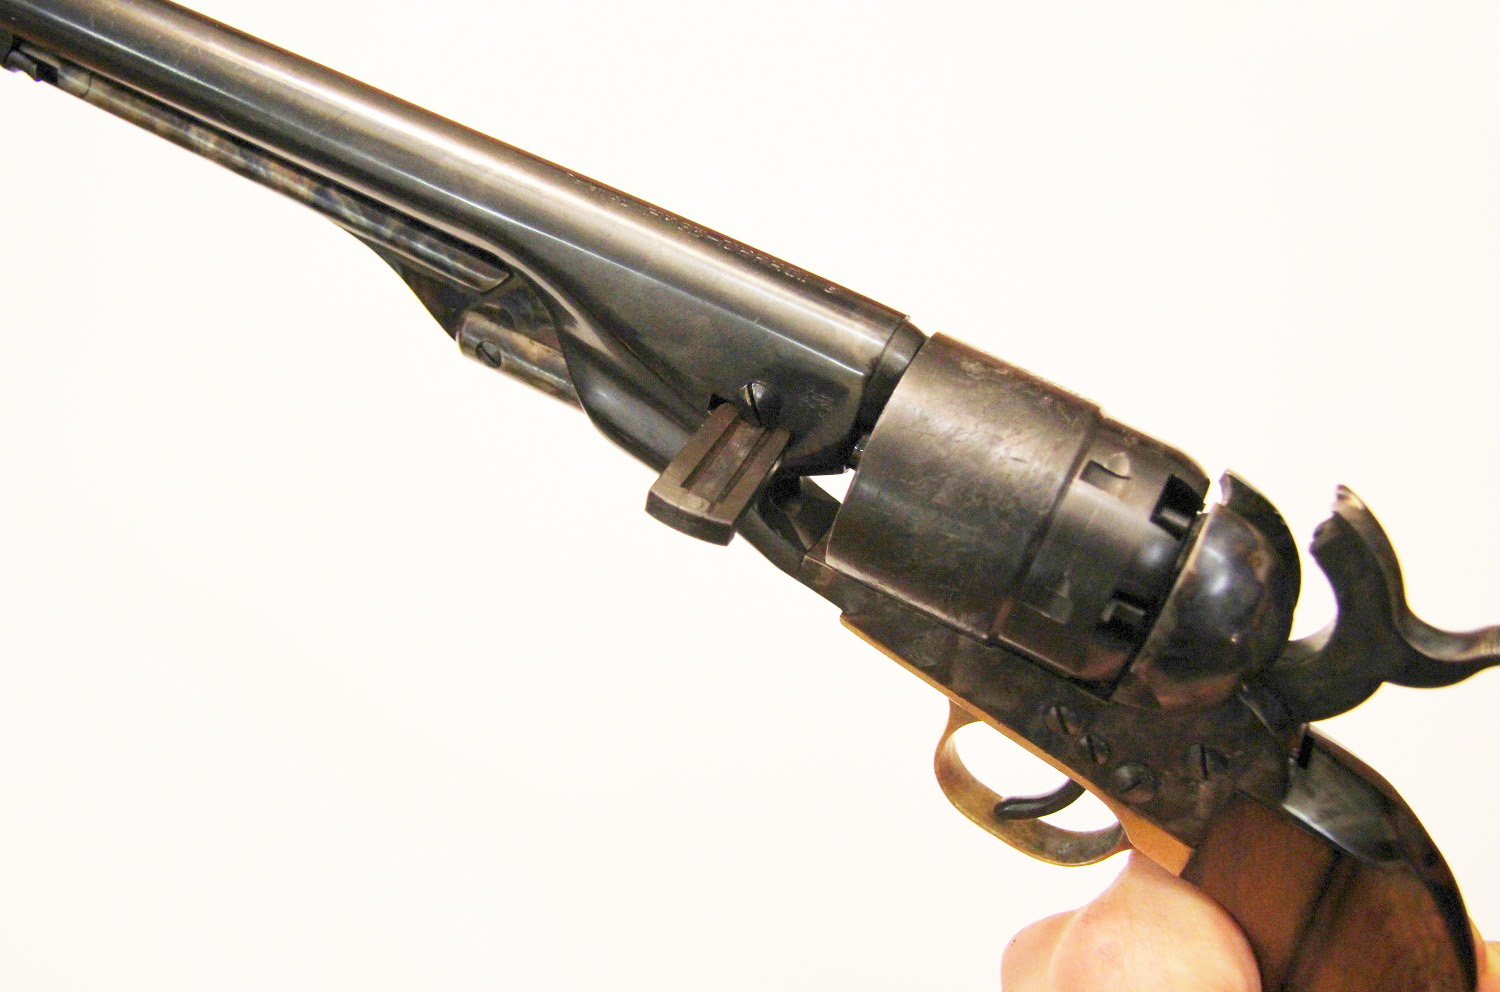 Colt Army 1860 reassembly